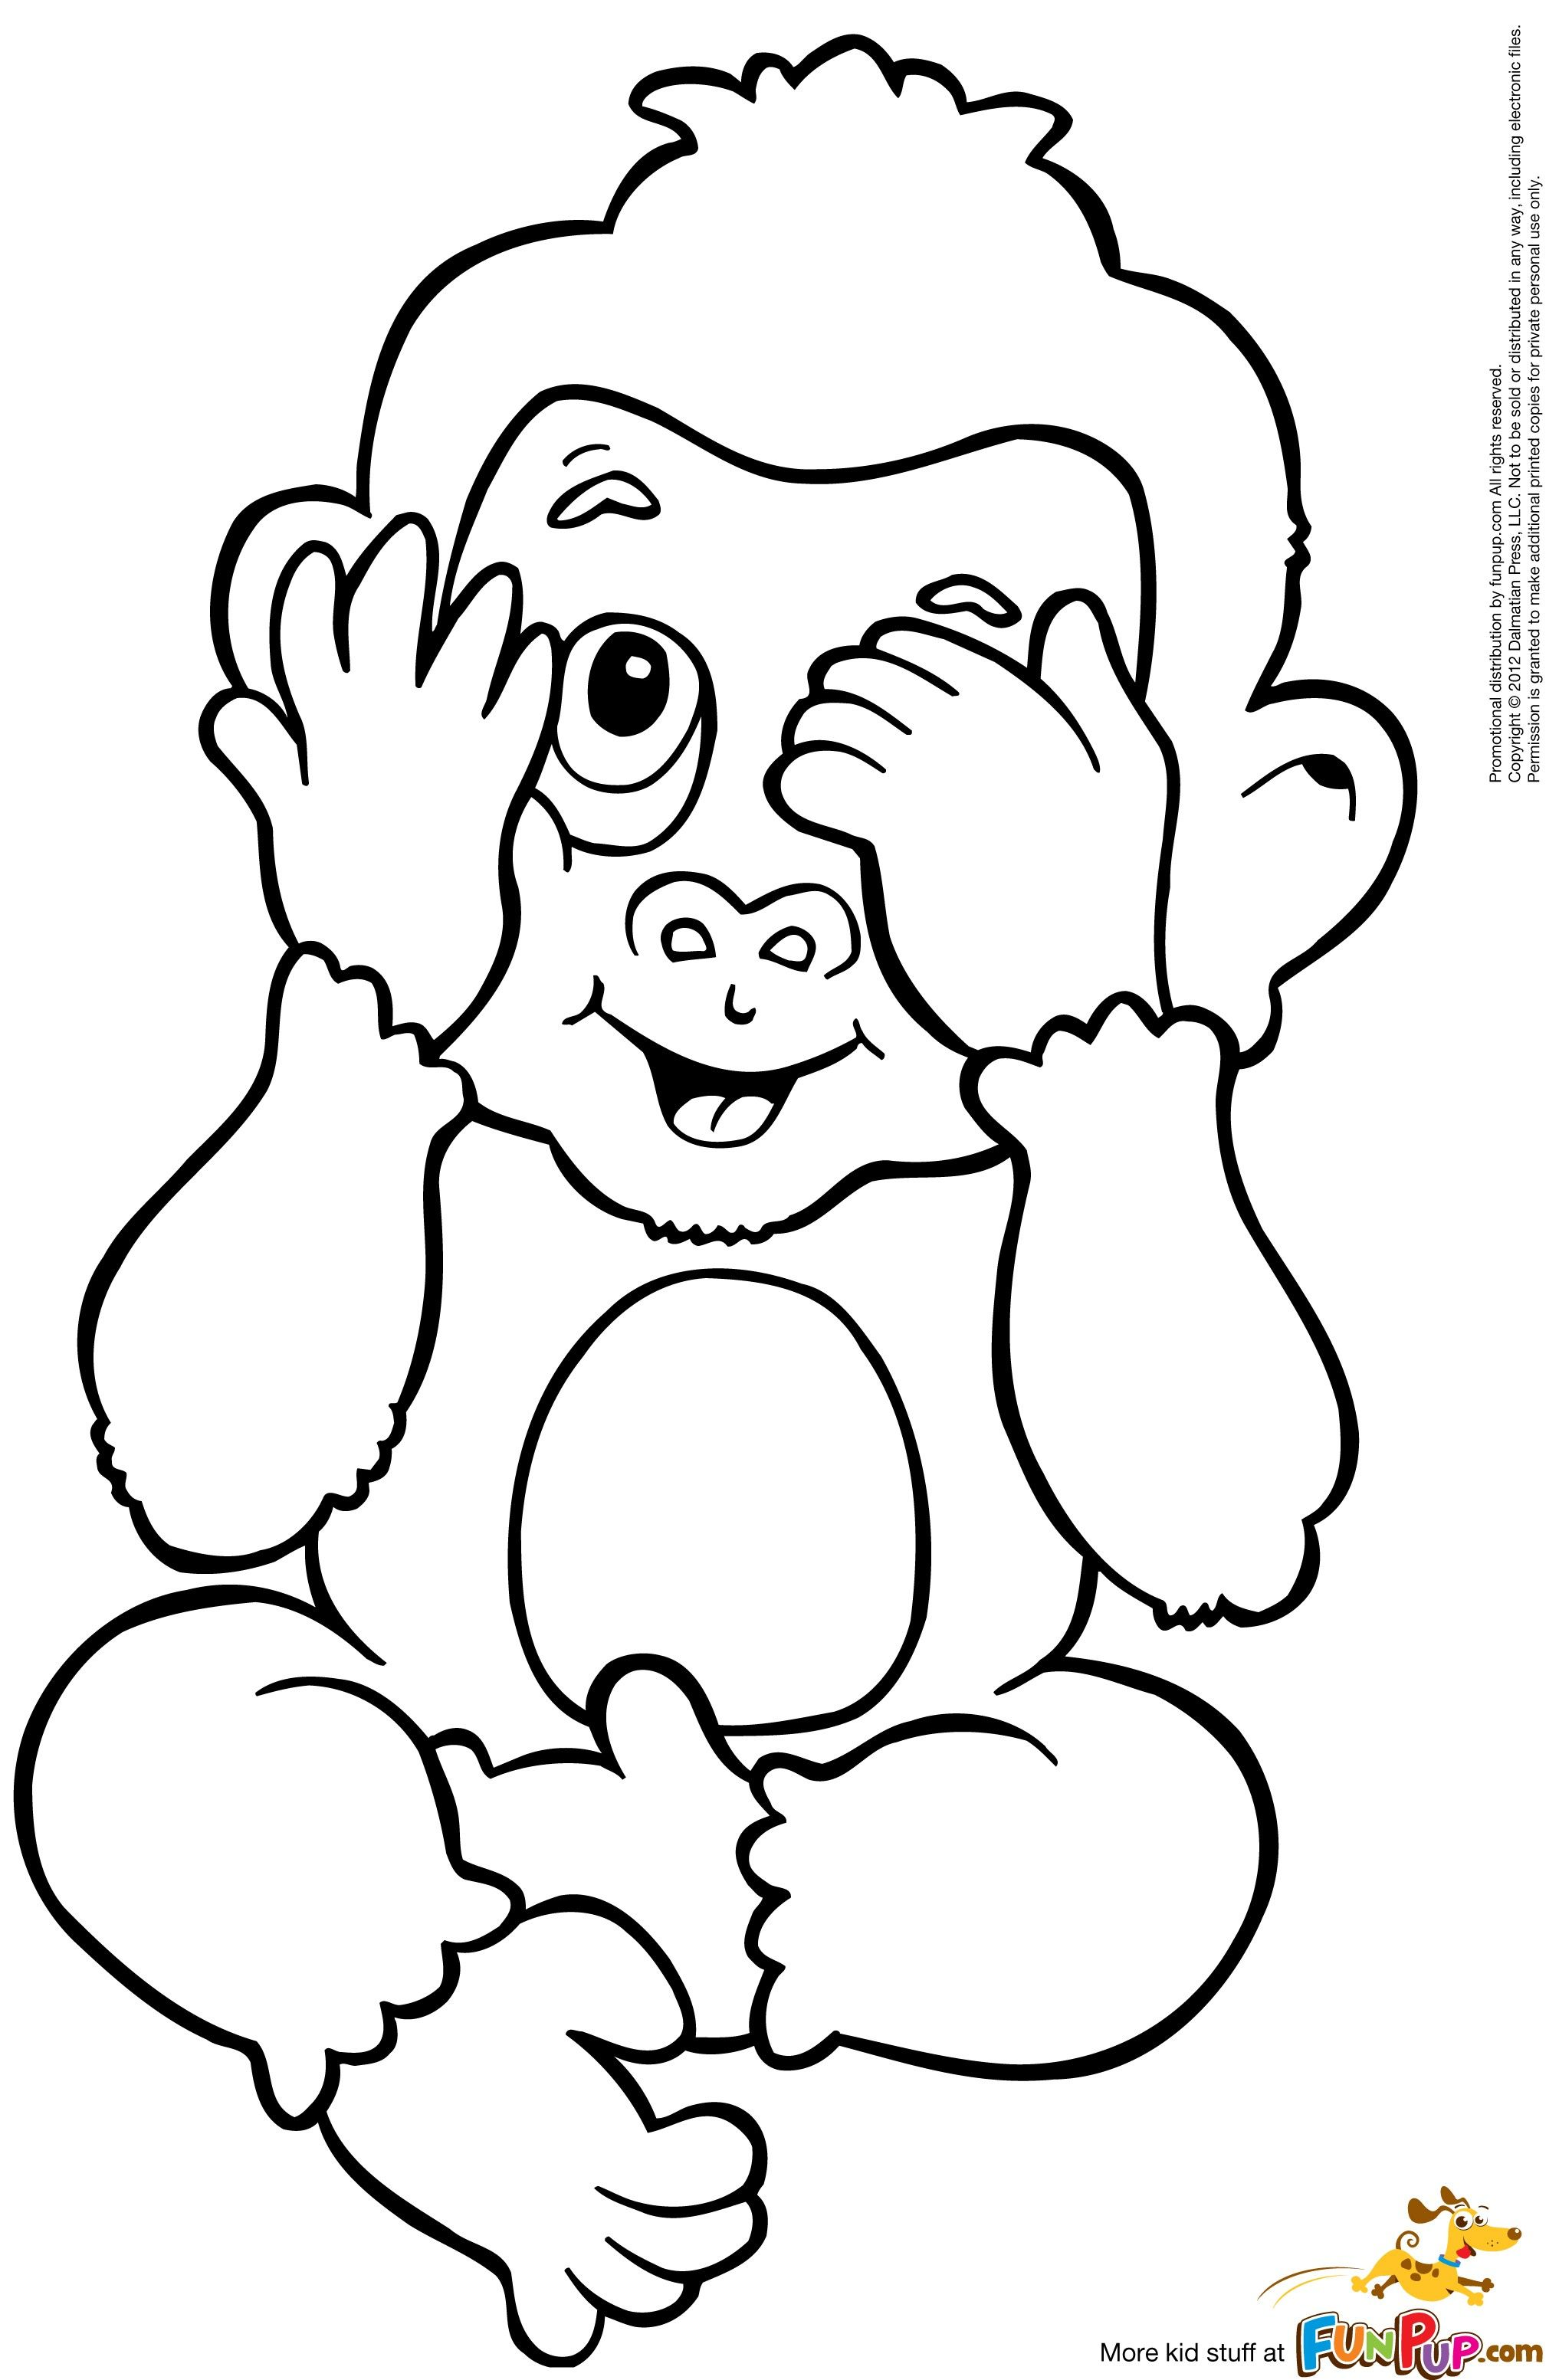 Monkeys Coloring Pages Monkey Coloring Pages Monkey Coloring